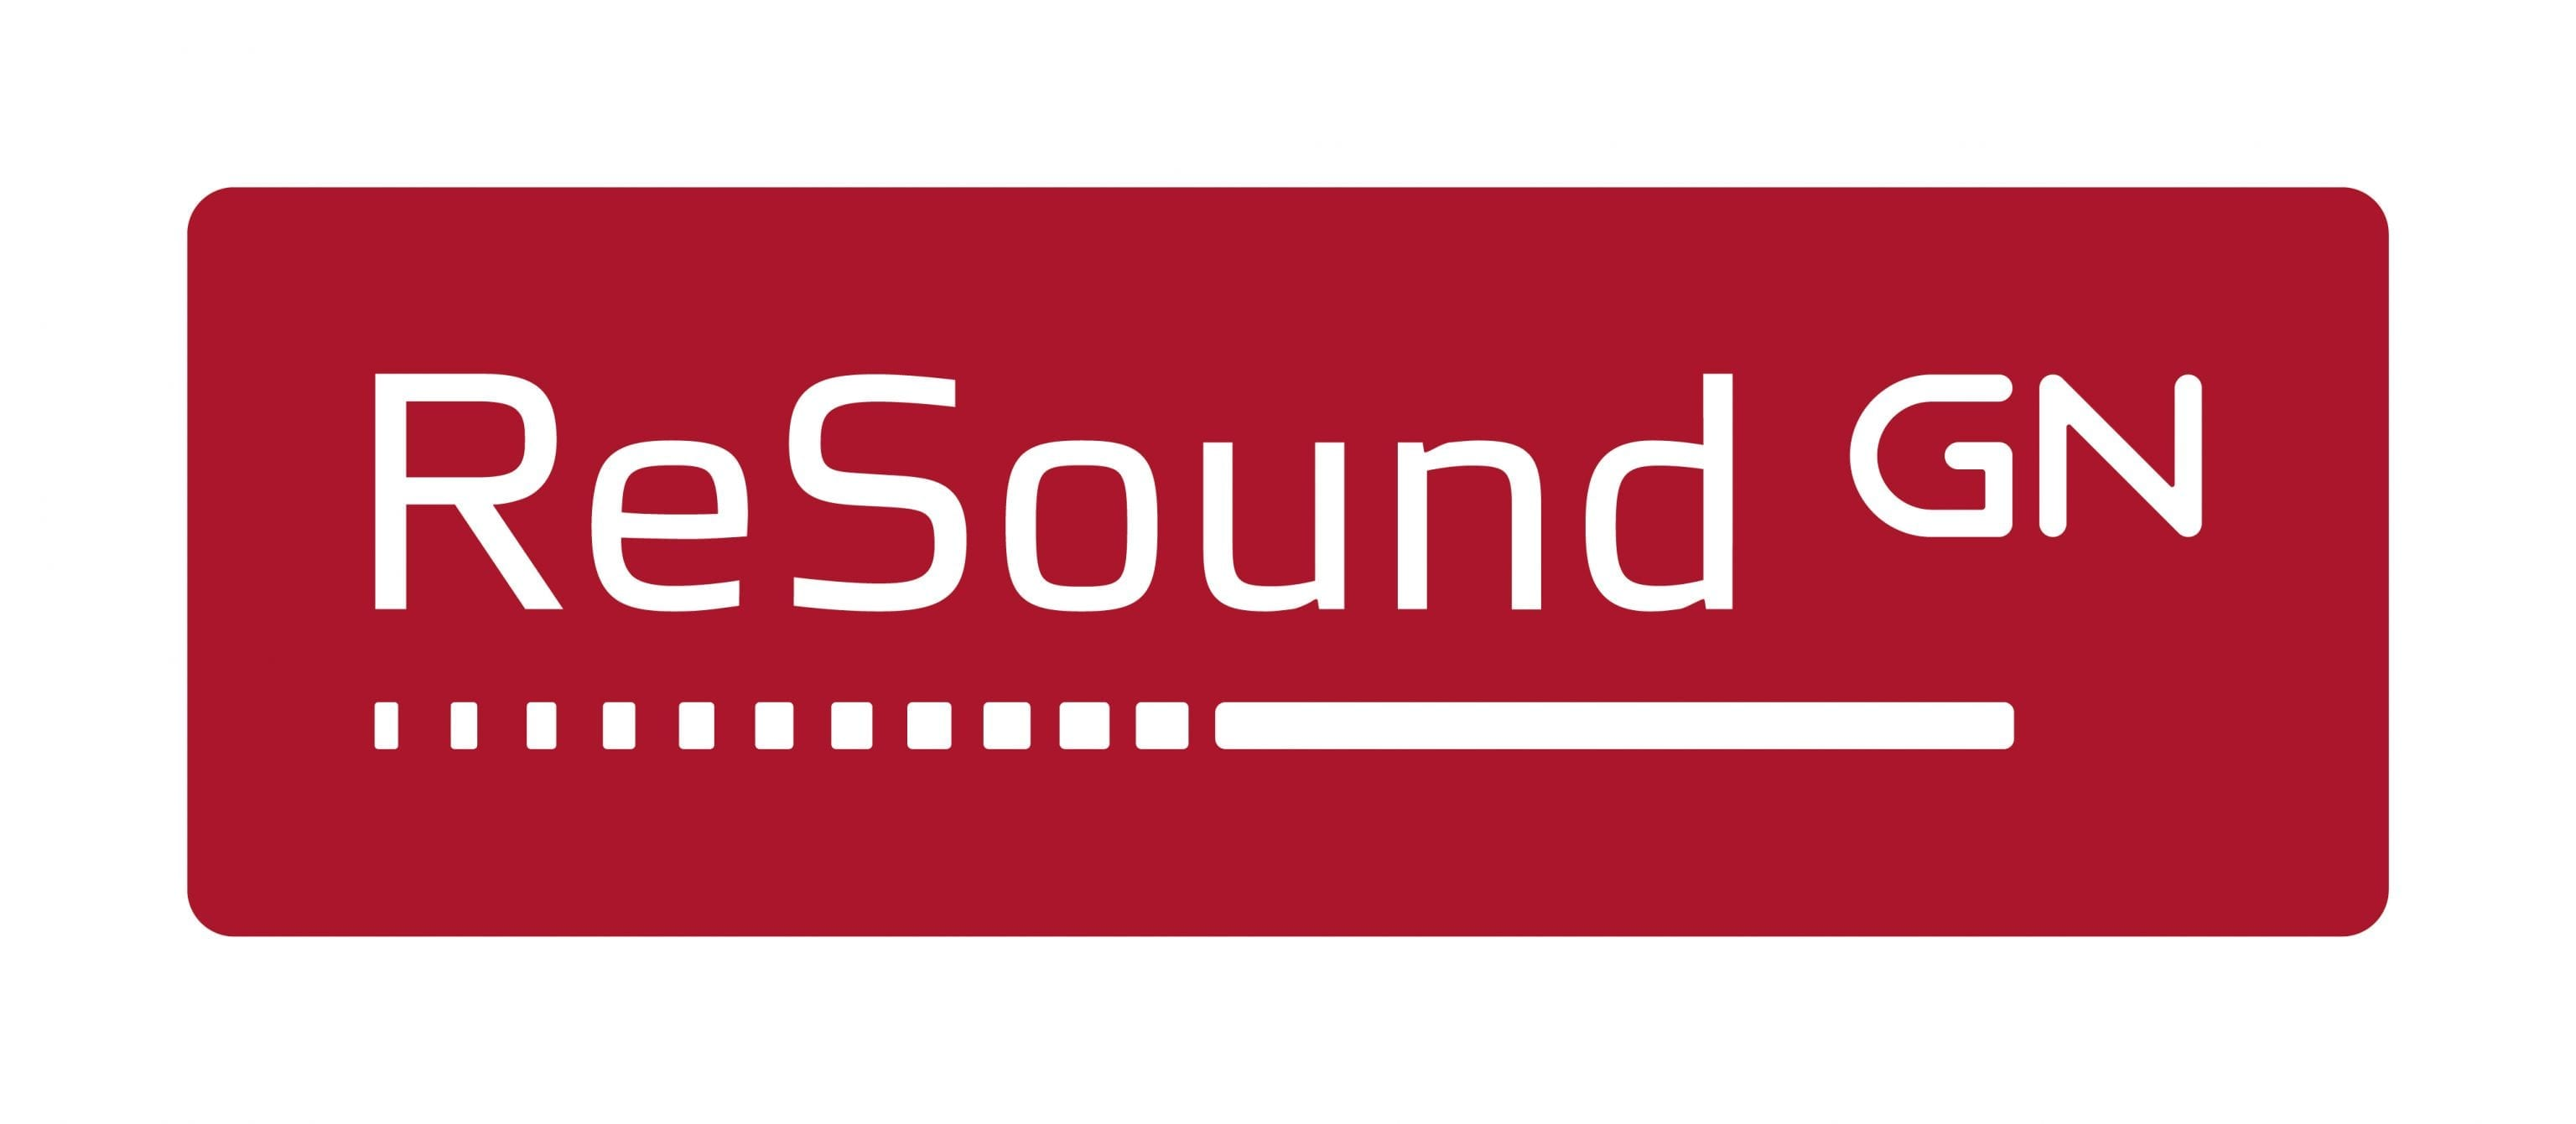 ReSound GN Logo RGB 300ppi scaled 1